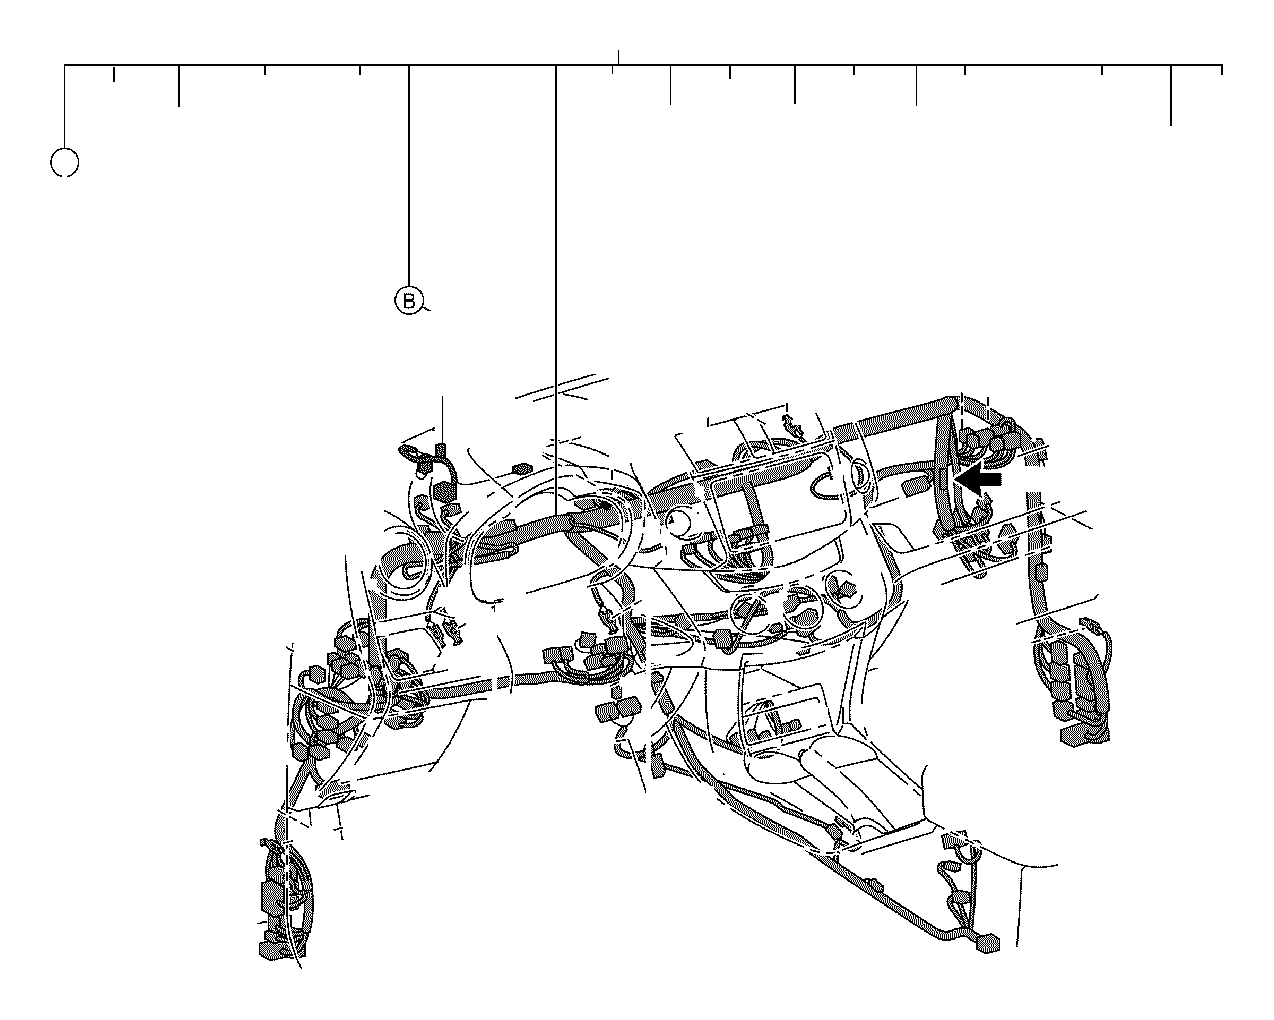 Toyota RAV4 Holder, connector no. 10. Electrical, wiring